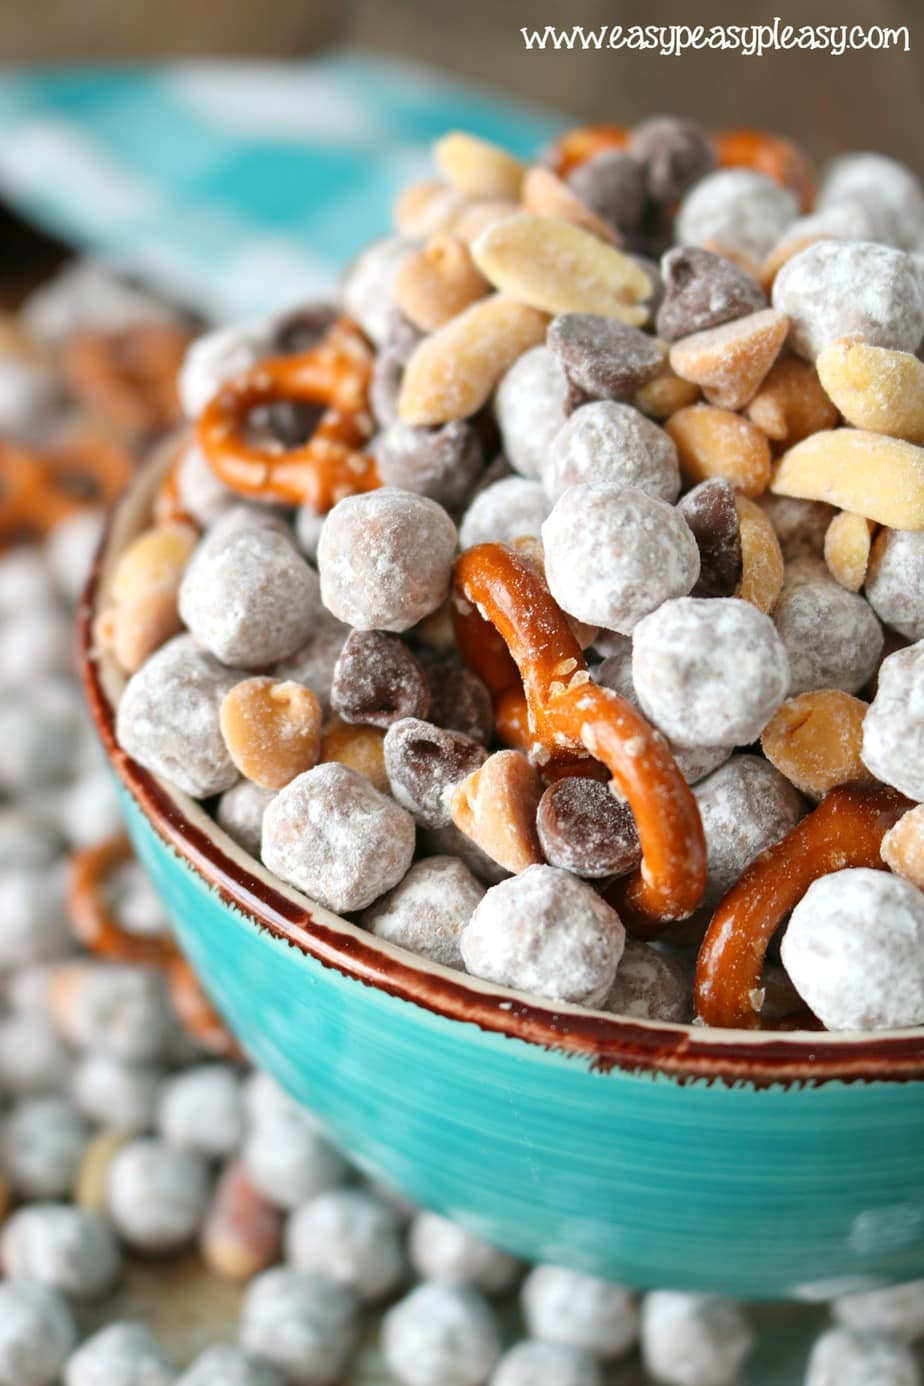 Make snack mix that your kids will love. Peanut Butter Cup cereal snack mix can be mixed up in 10 minutes! (ad)